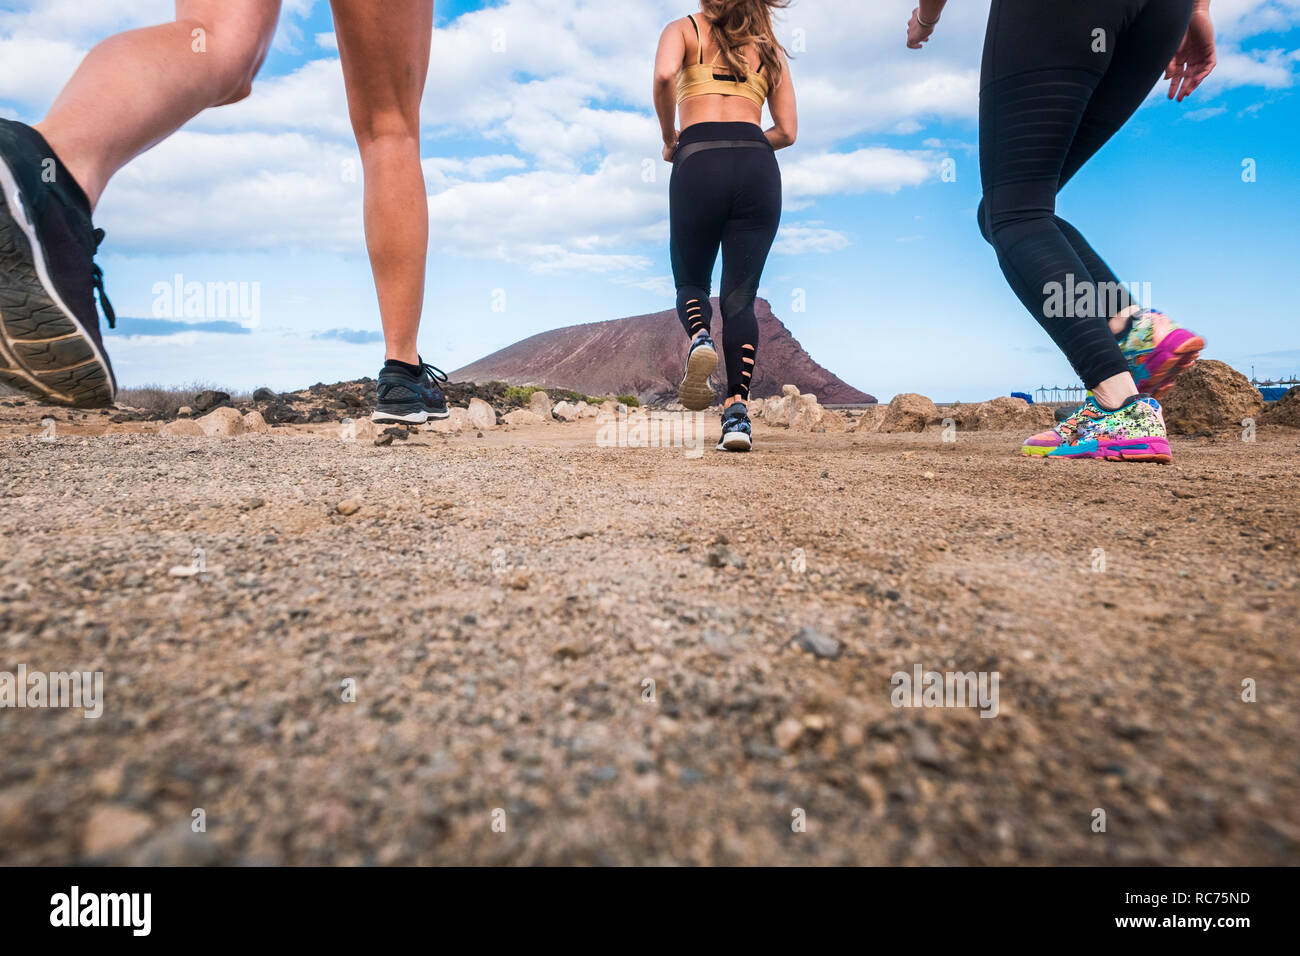 Ground point of view for three girls runner for jogging exercise running outdoor in the nature - fitness healthy lifestyle for young people enjoying t - Stock Image